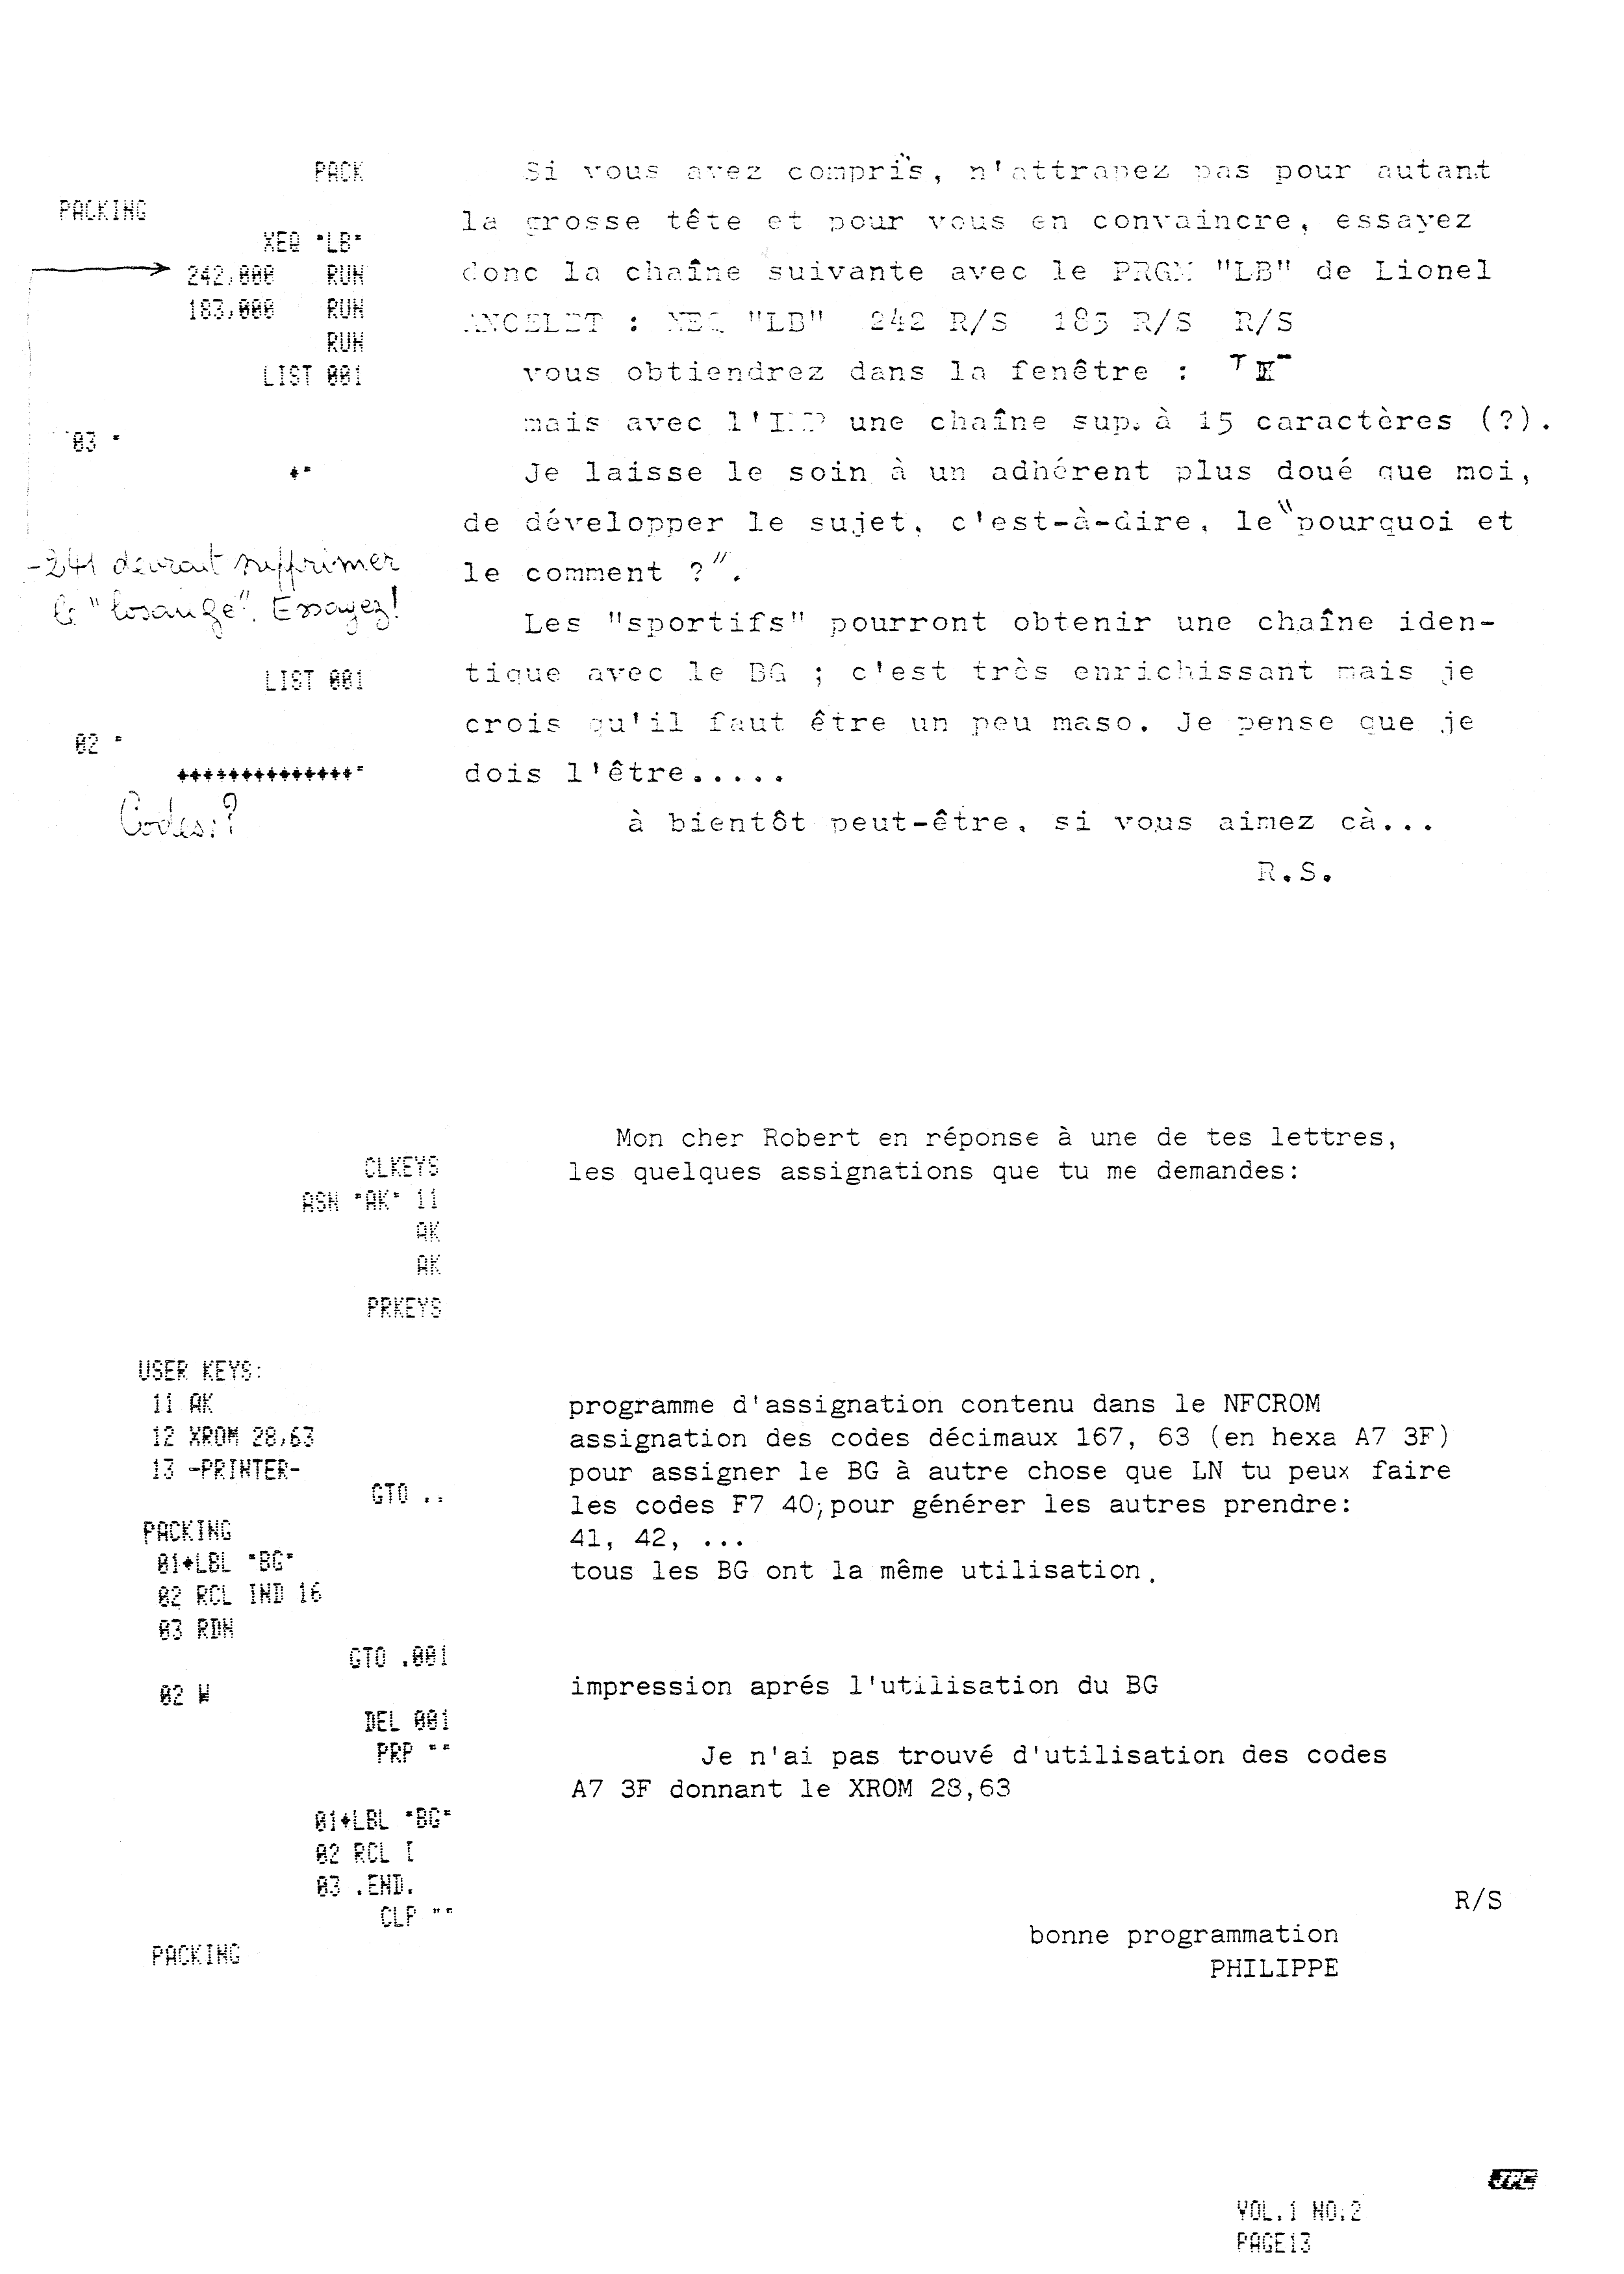 Jp-2-page-13-1000